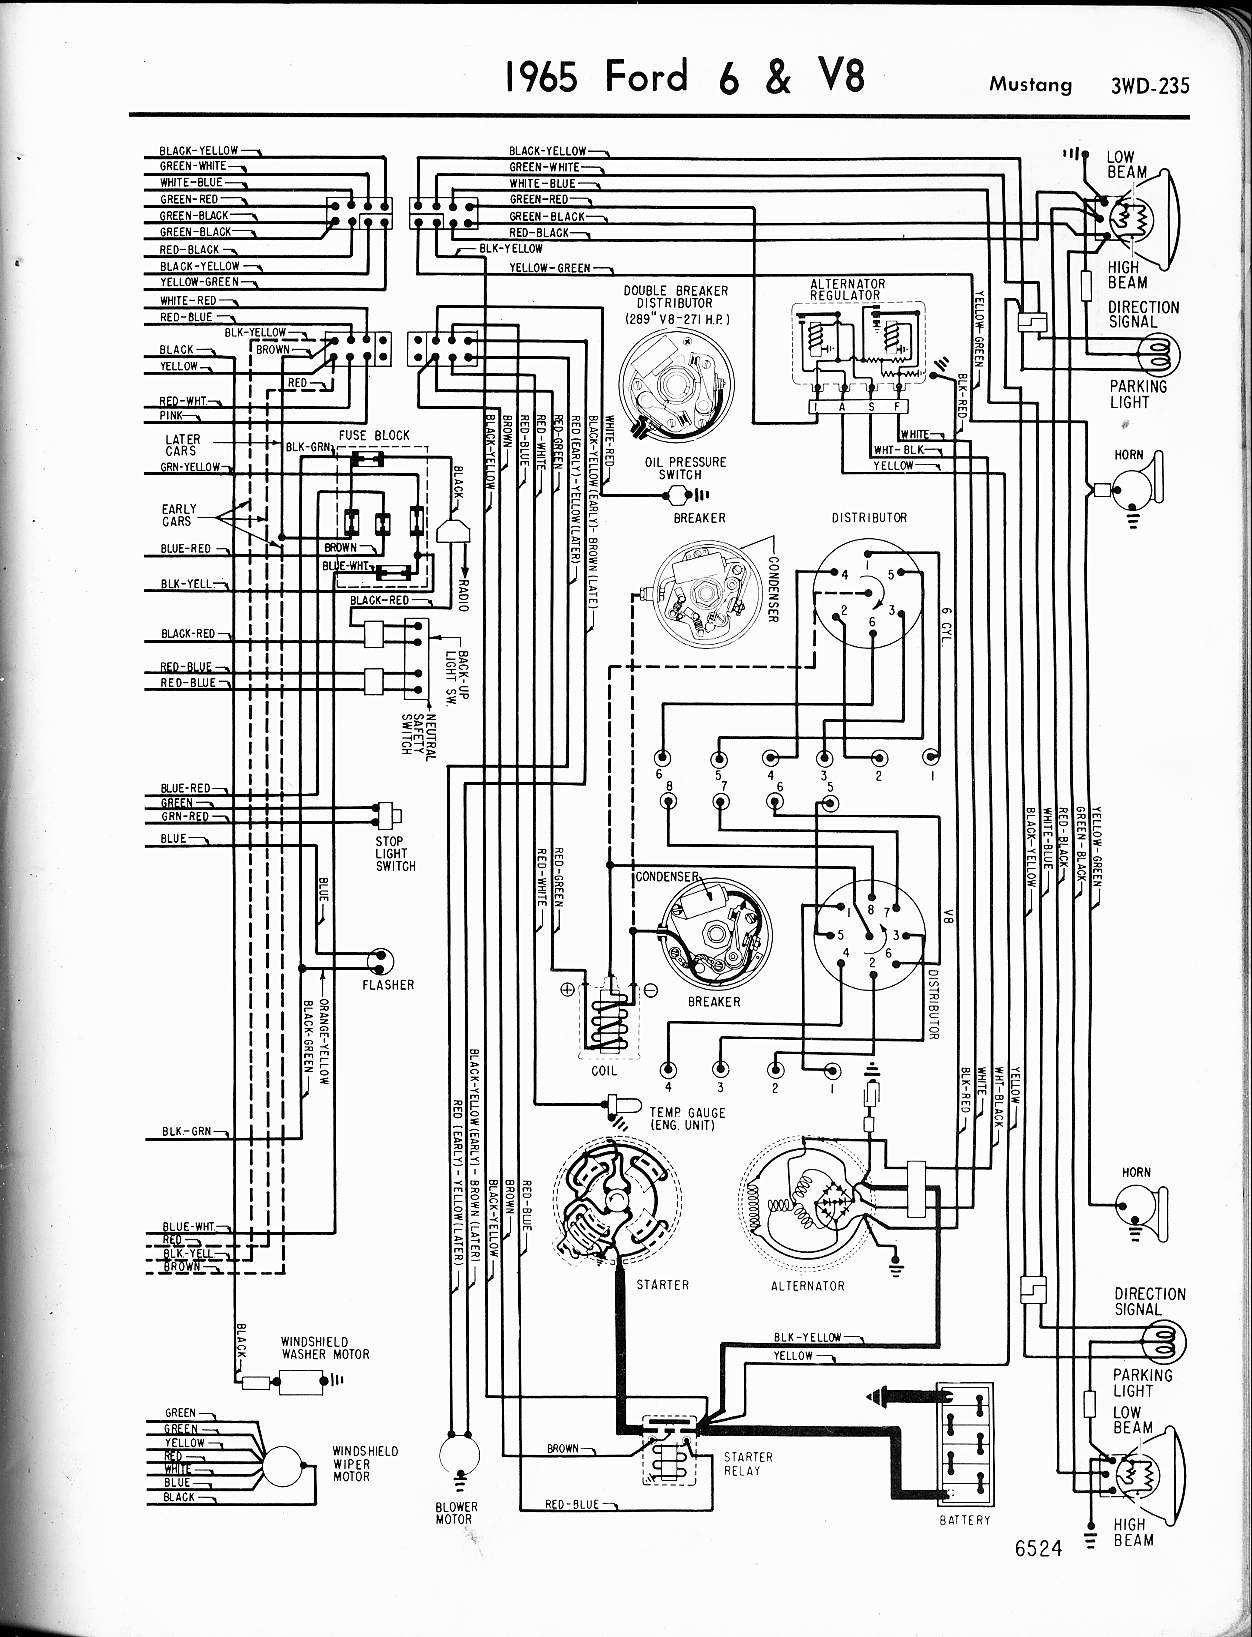 Ford Diagrams 1994 F 150 4x4 Wiring Diagram 65 Mustang 2 Drawing B